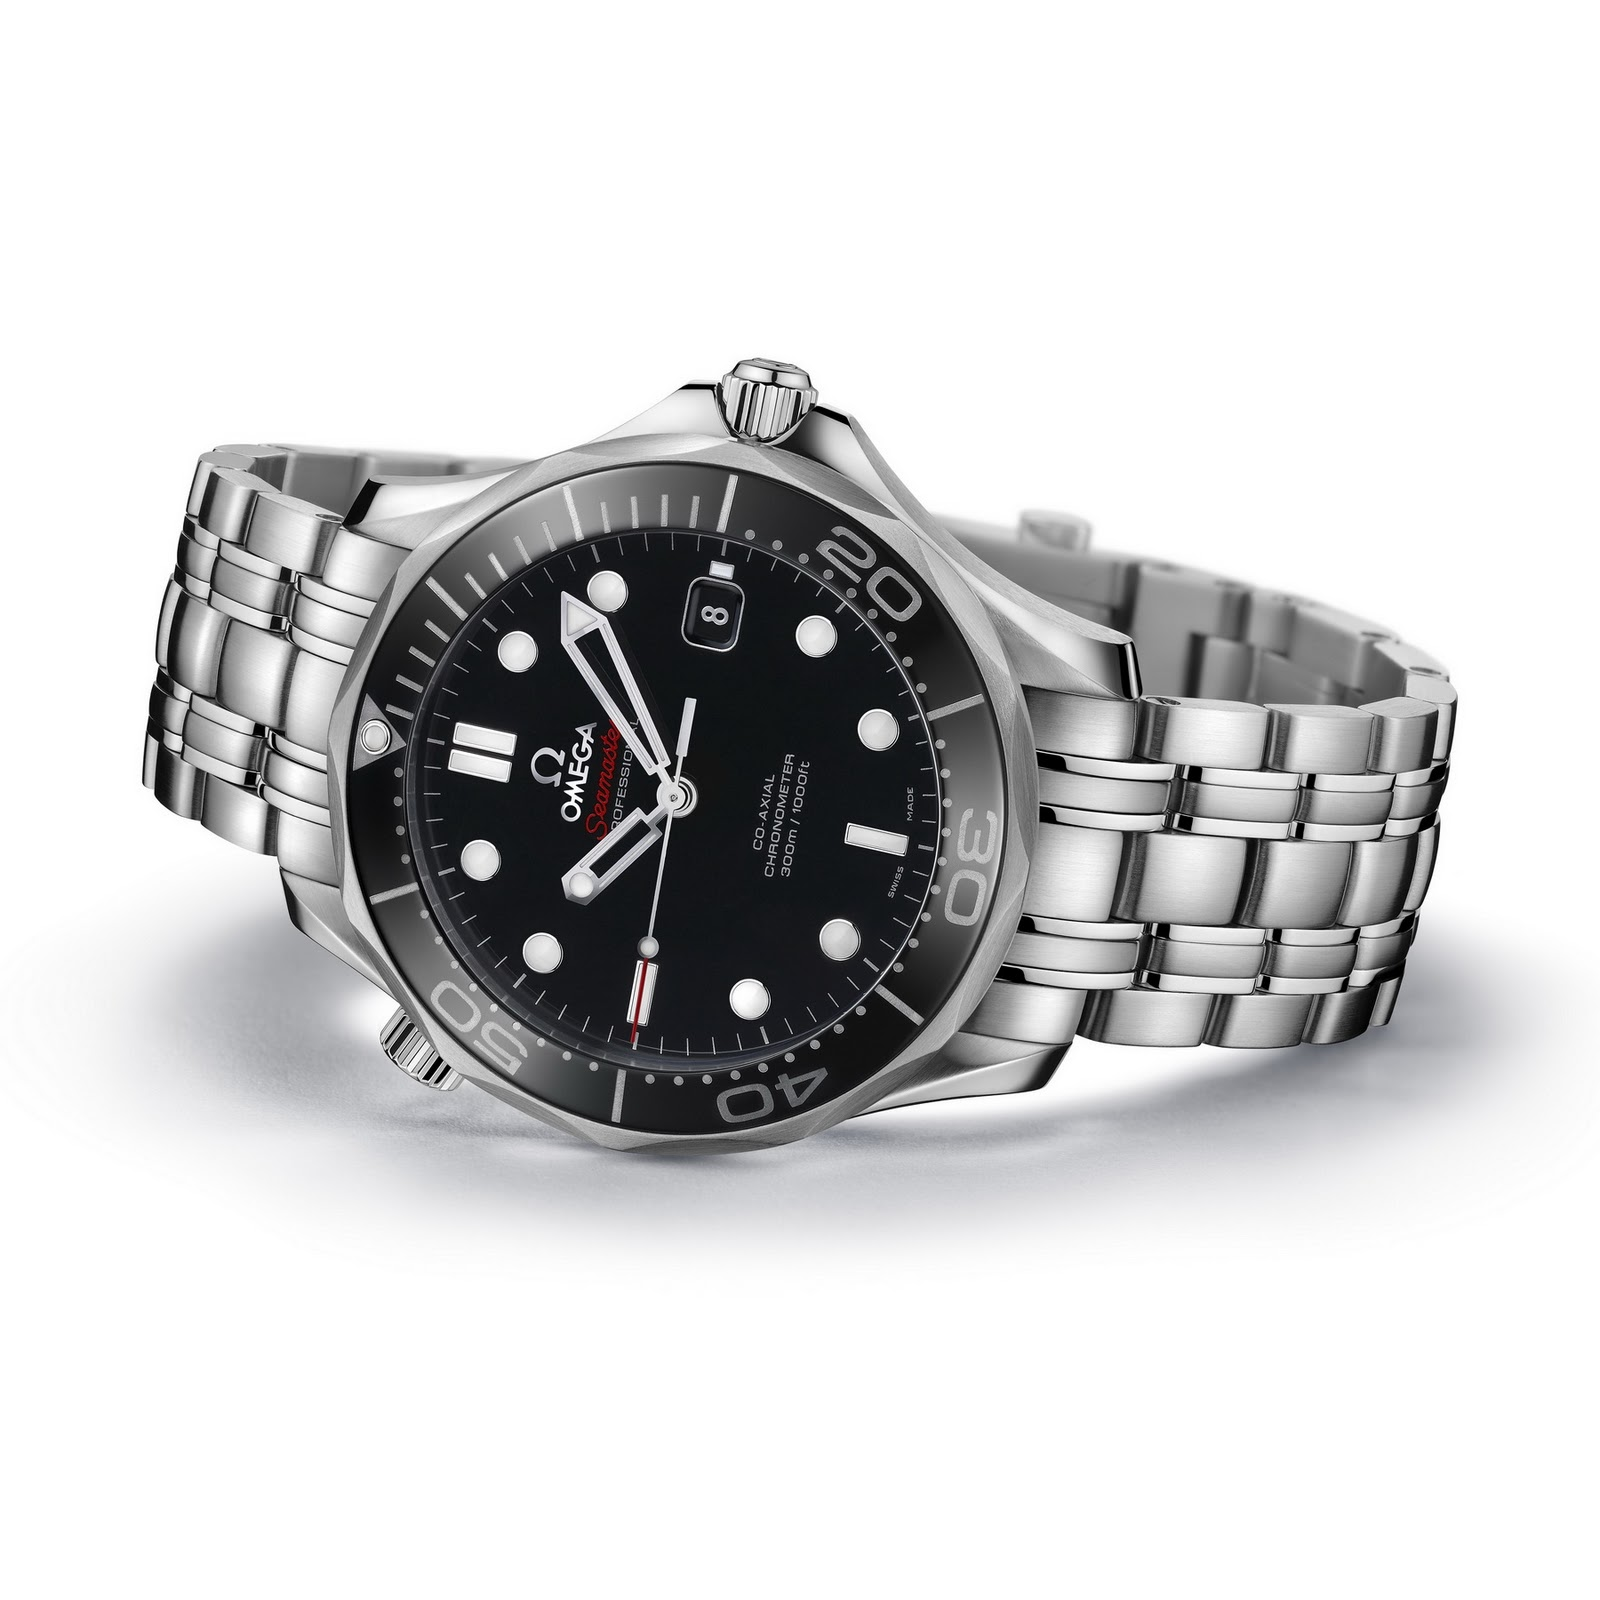 OMEGA-Seamaster-Diver-Co-Axial-300M-1-.jpg